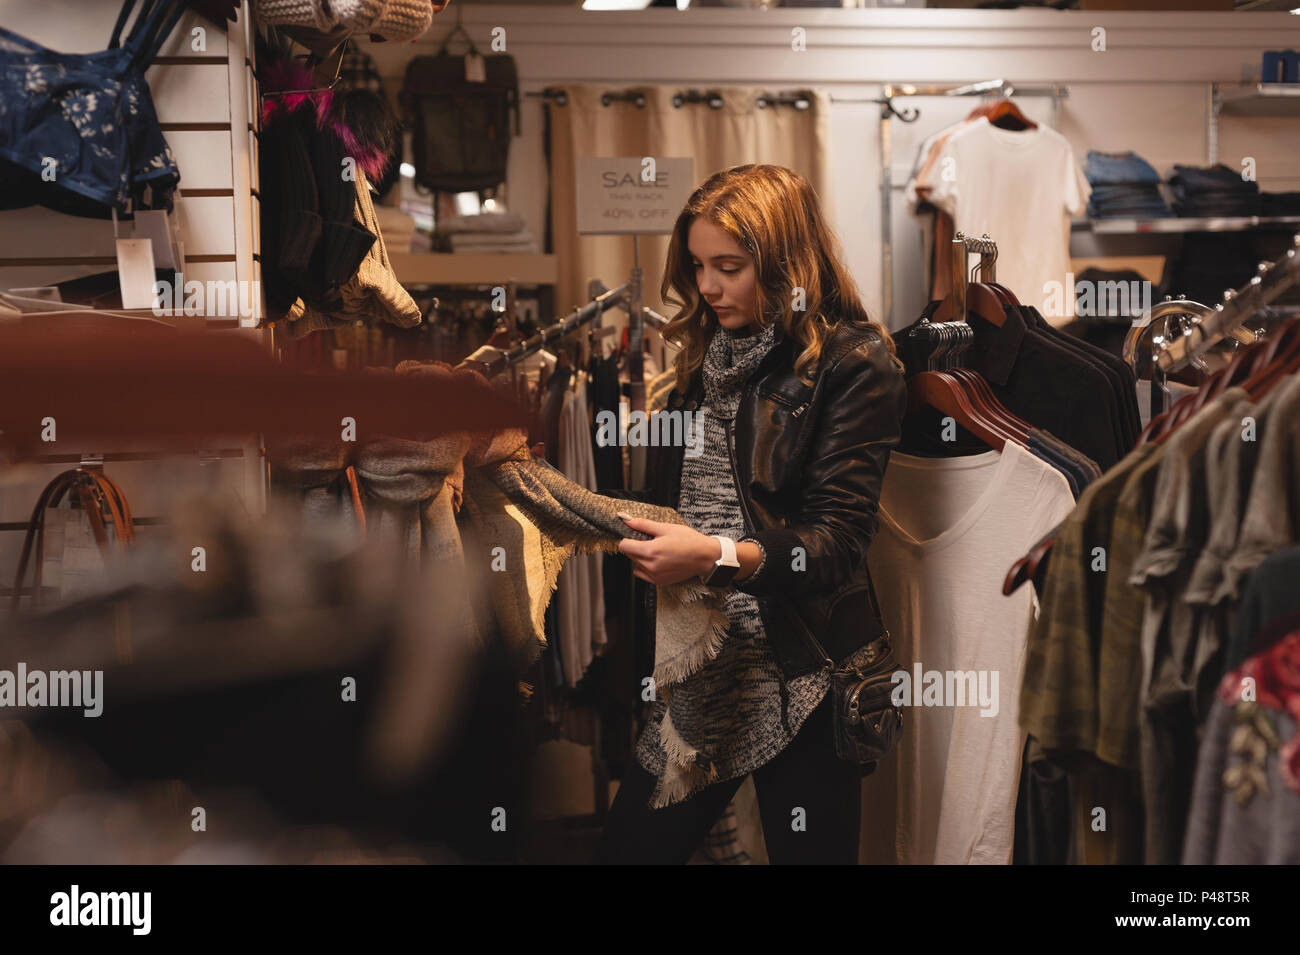 Belle woman shopping for clothes Photo Stock